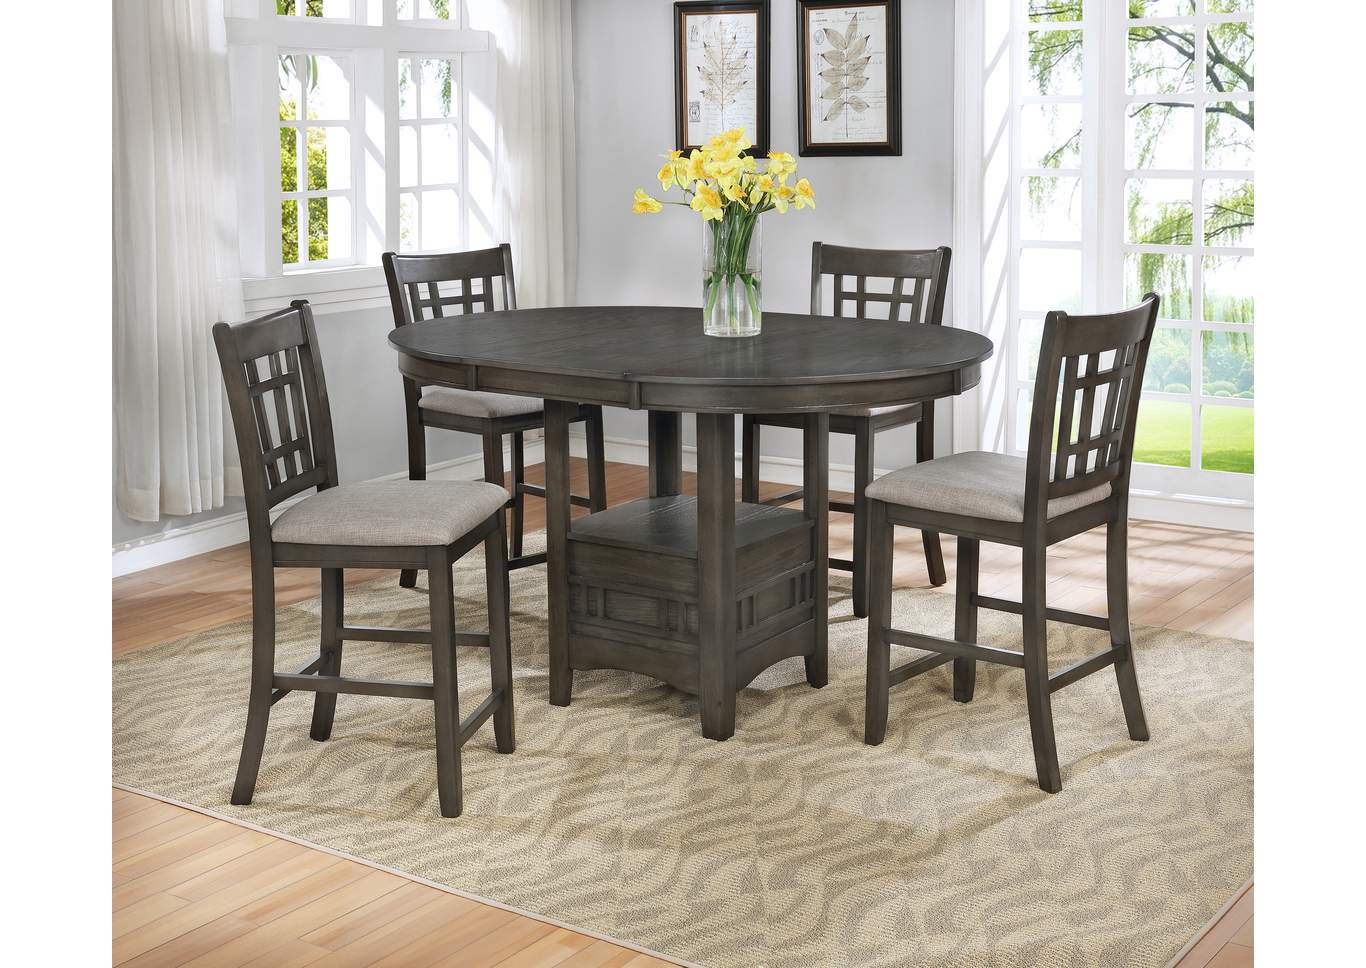 Hartwelll Grey Counter Height Extension Dining Table w/4 Counter Height Chairs,Crown Mark